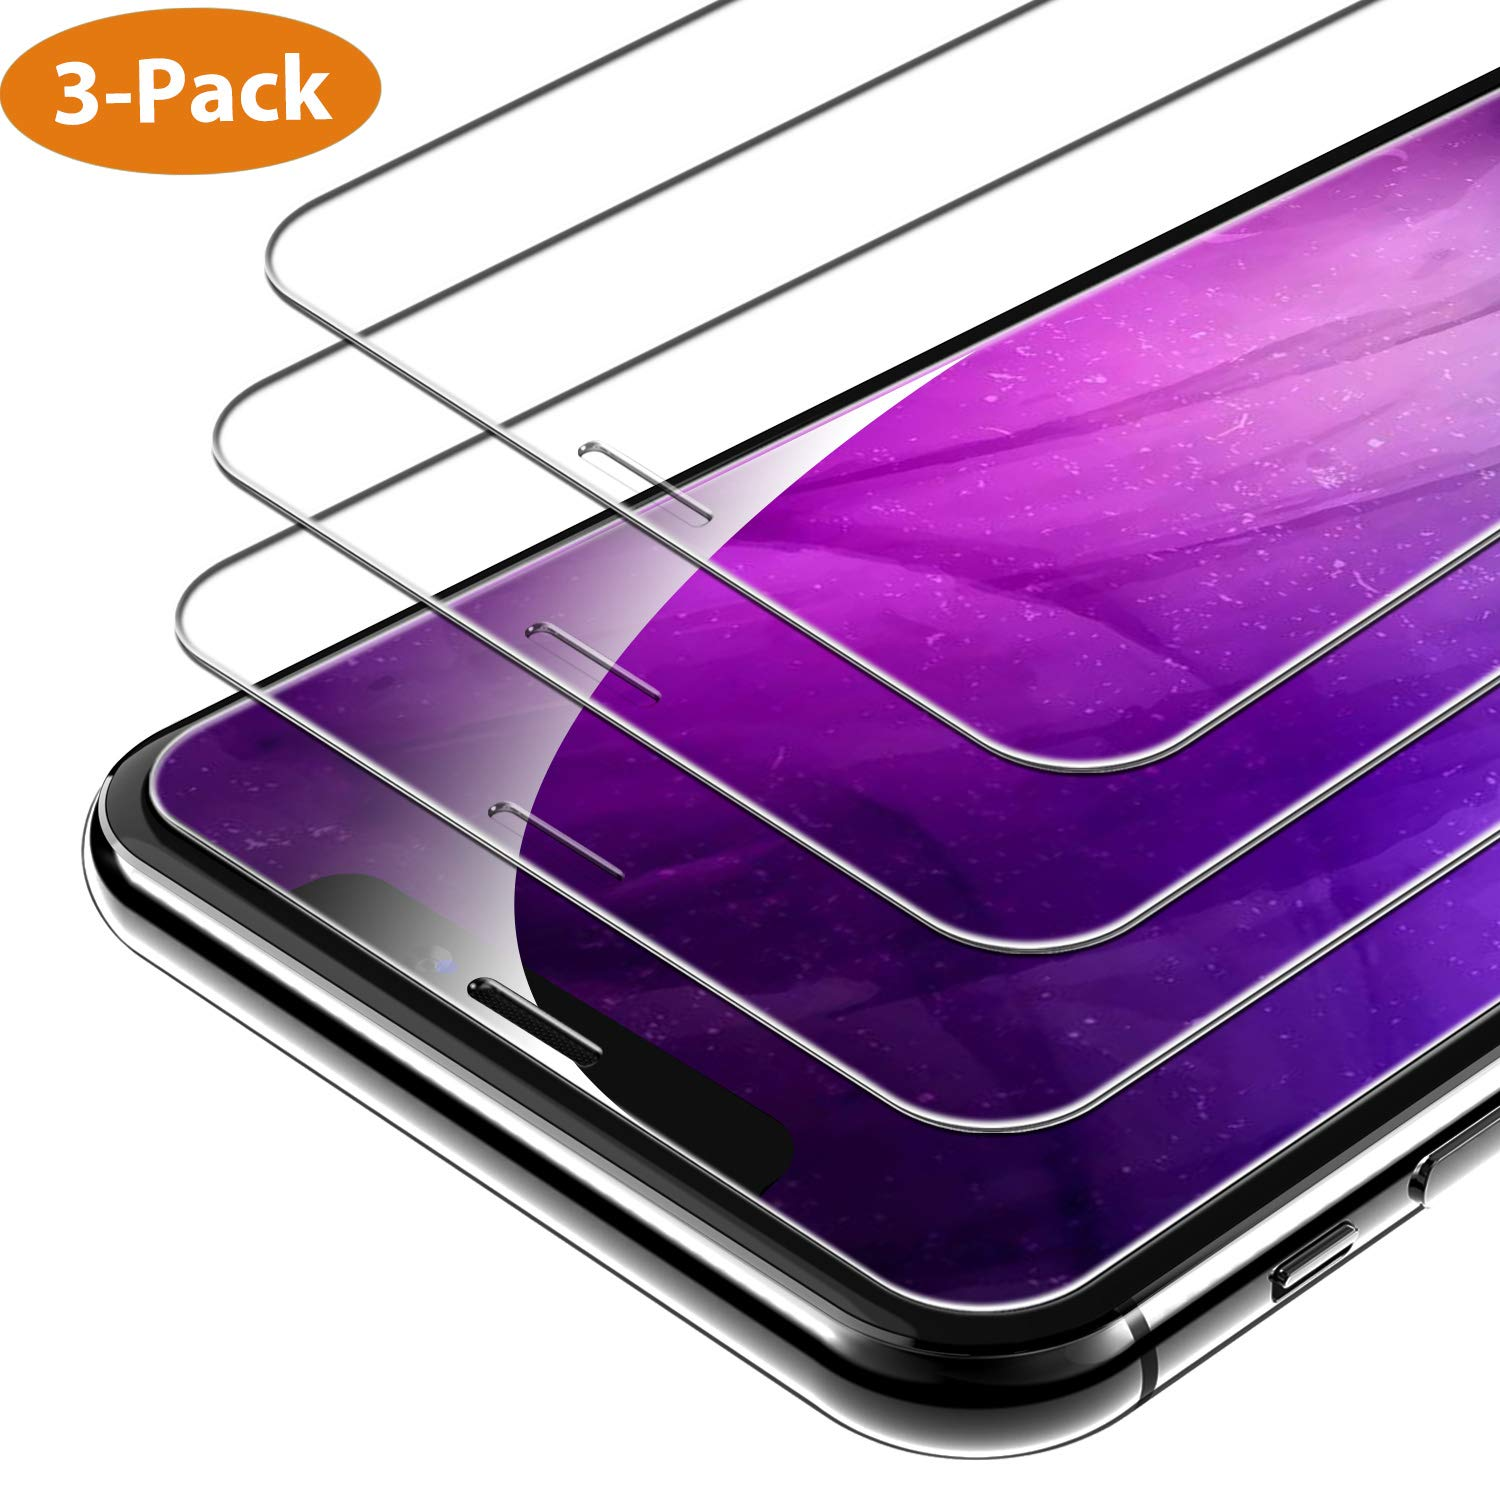 Syncwire iPhone XS/X Screen Protector [3-Packs], 9H Hardness Anti-Fingerprint Tempered Glass for iPhone XS/X [Screen-Alignment Frame Included, Bubble-Free, Face ID Protection] by Syncwire